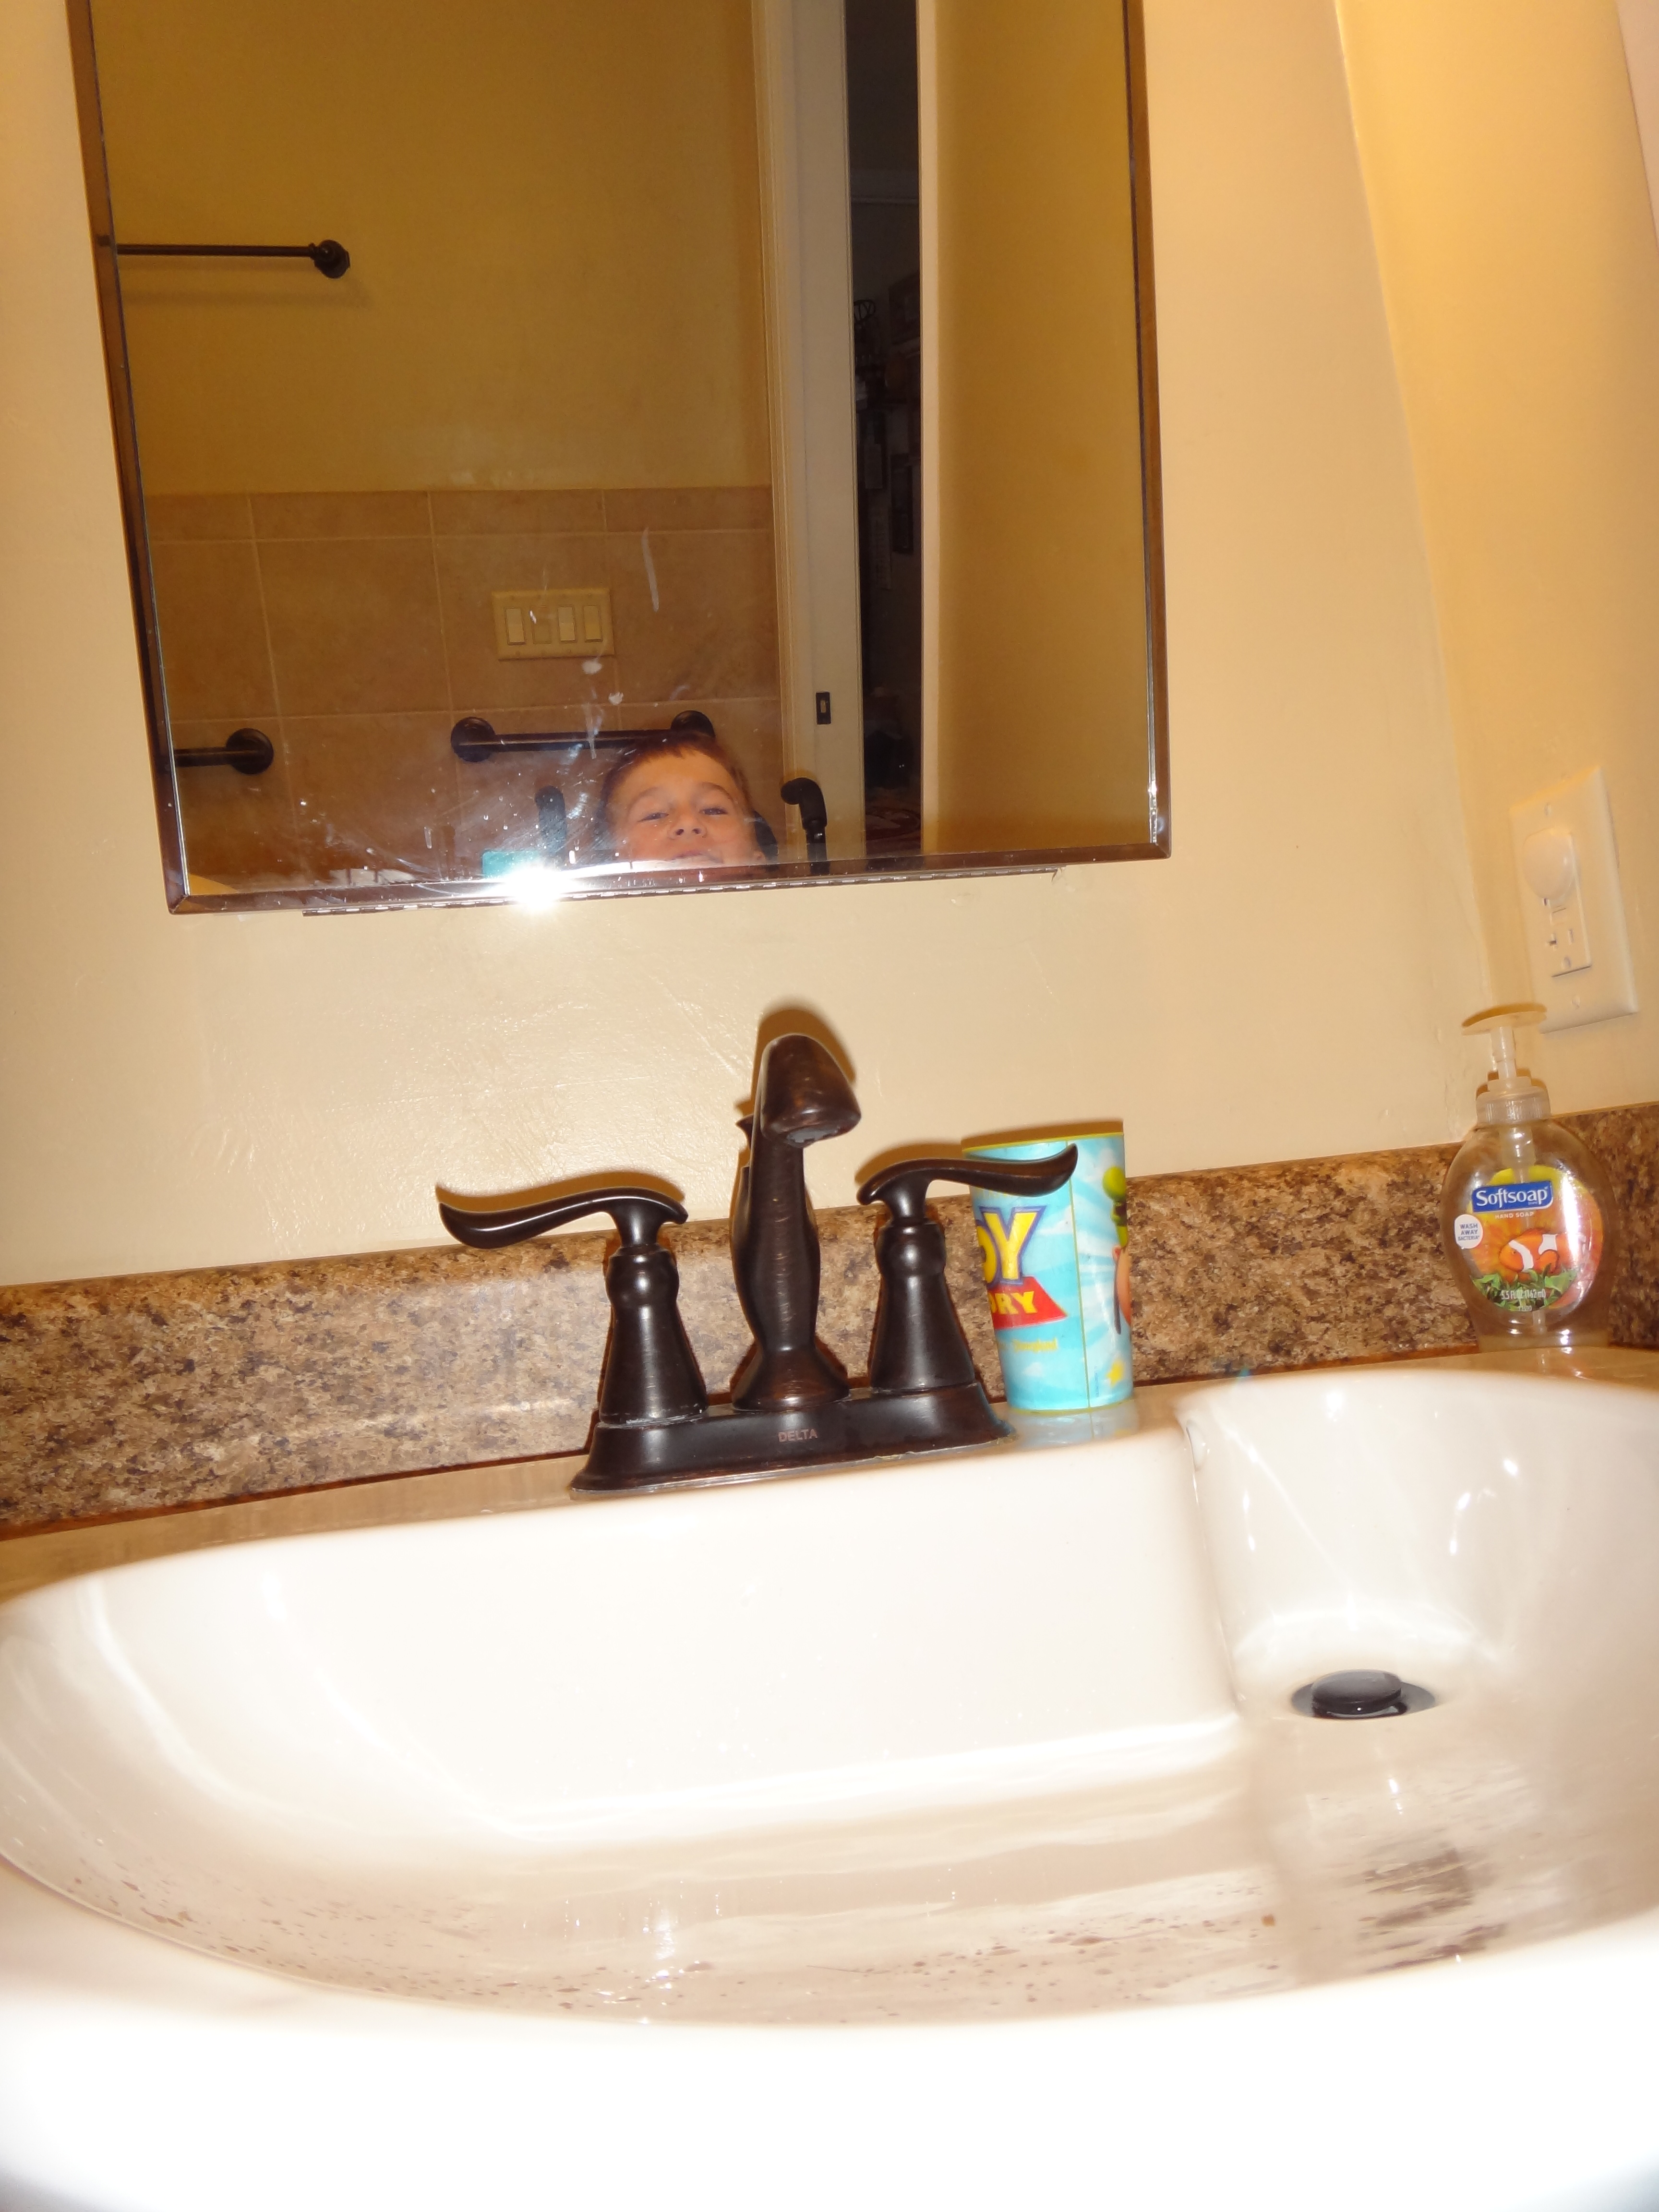 Handicap Bathroom Mirror Height how we remodeled our bathroom to make it accessible. | nobody's normal